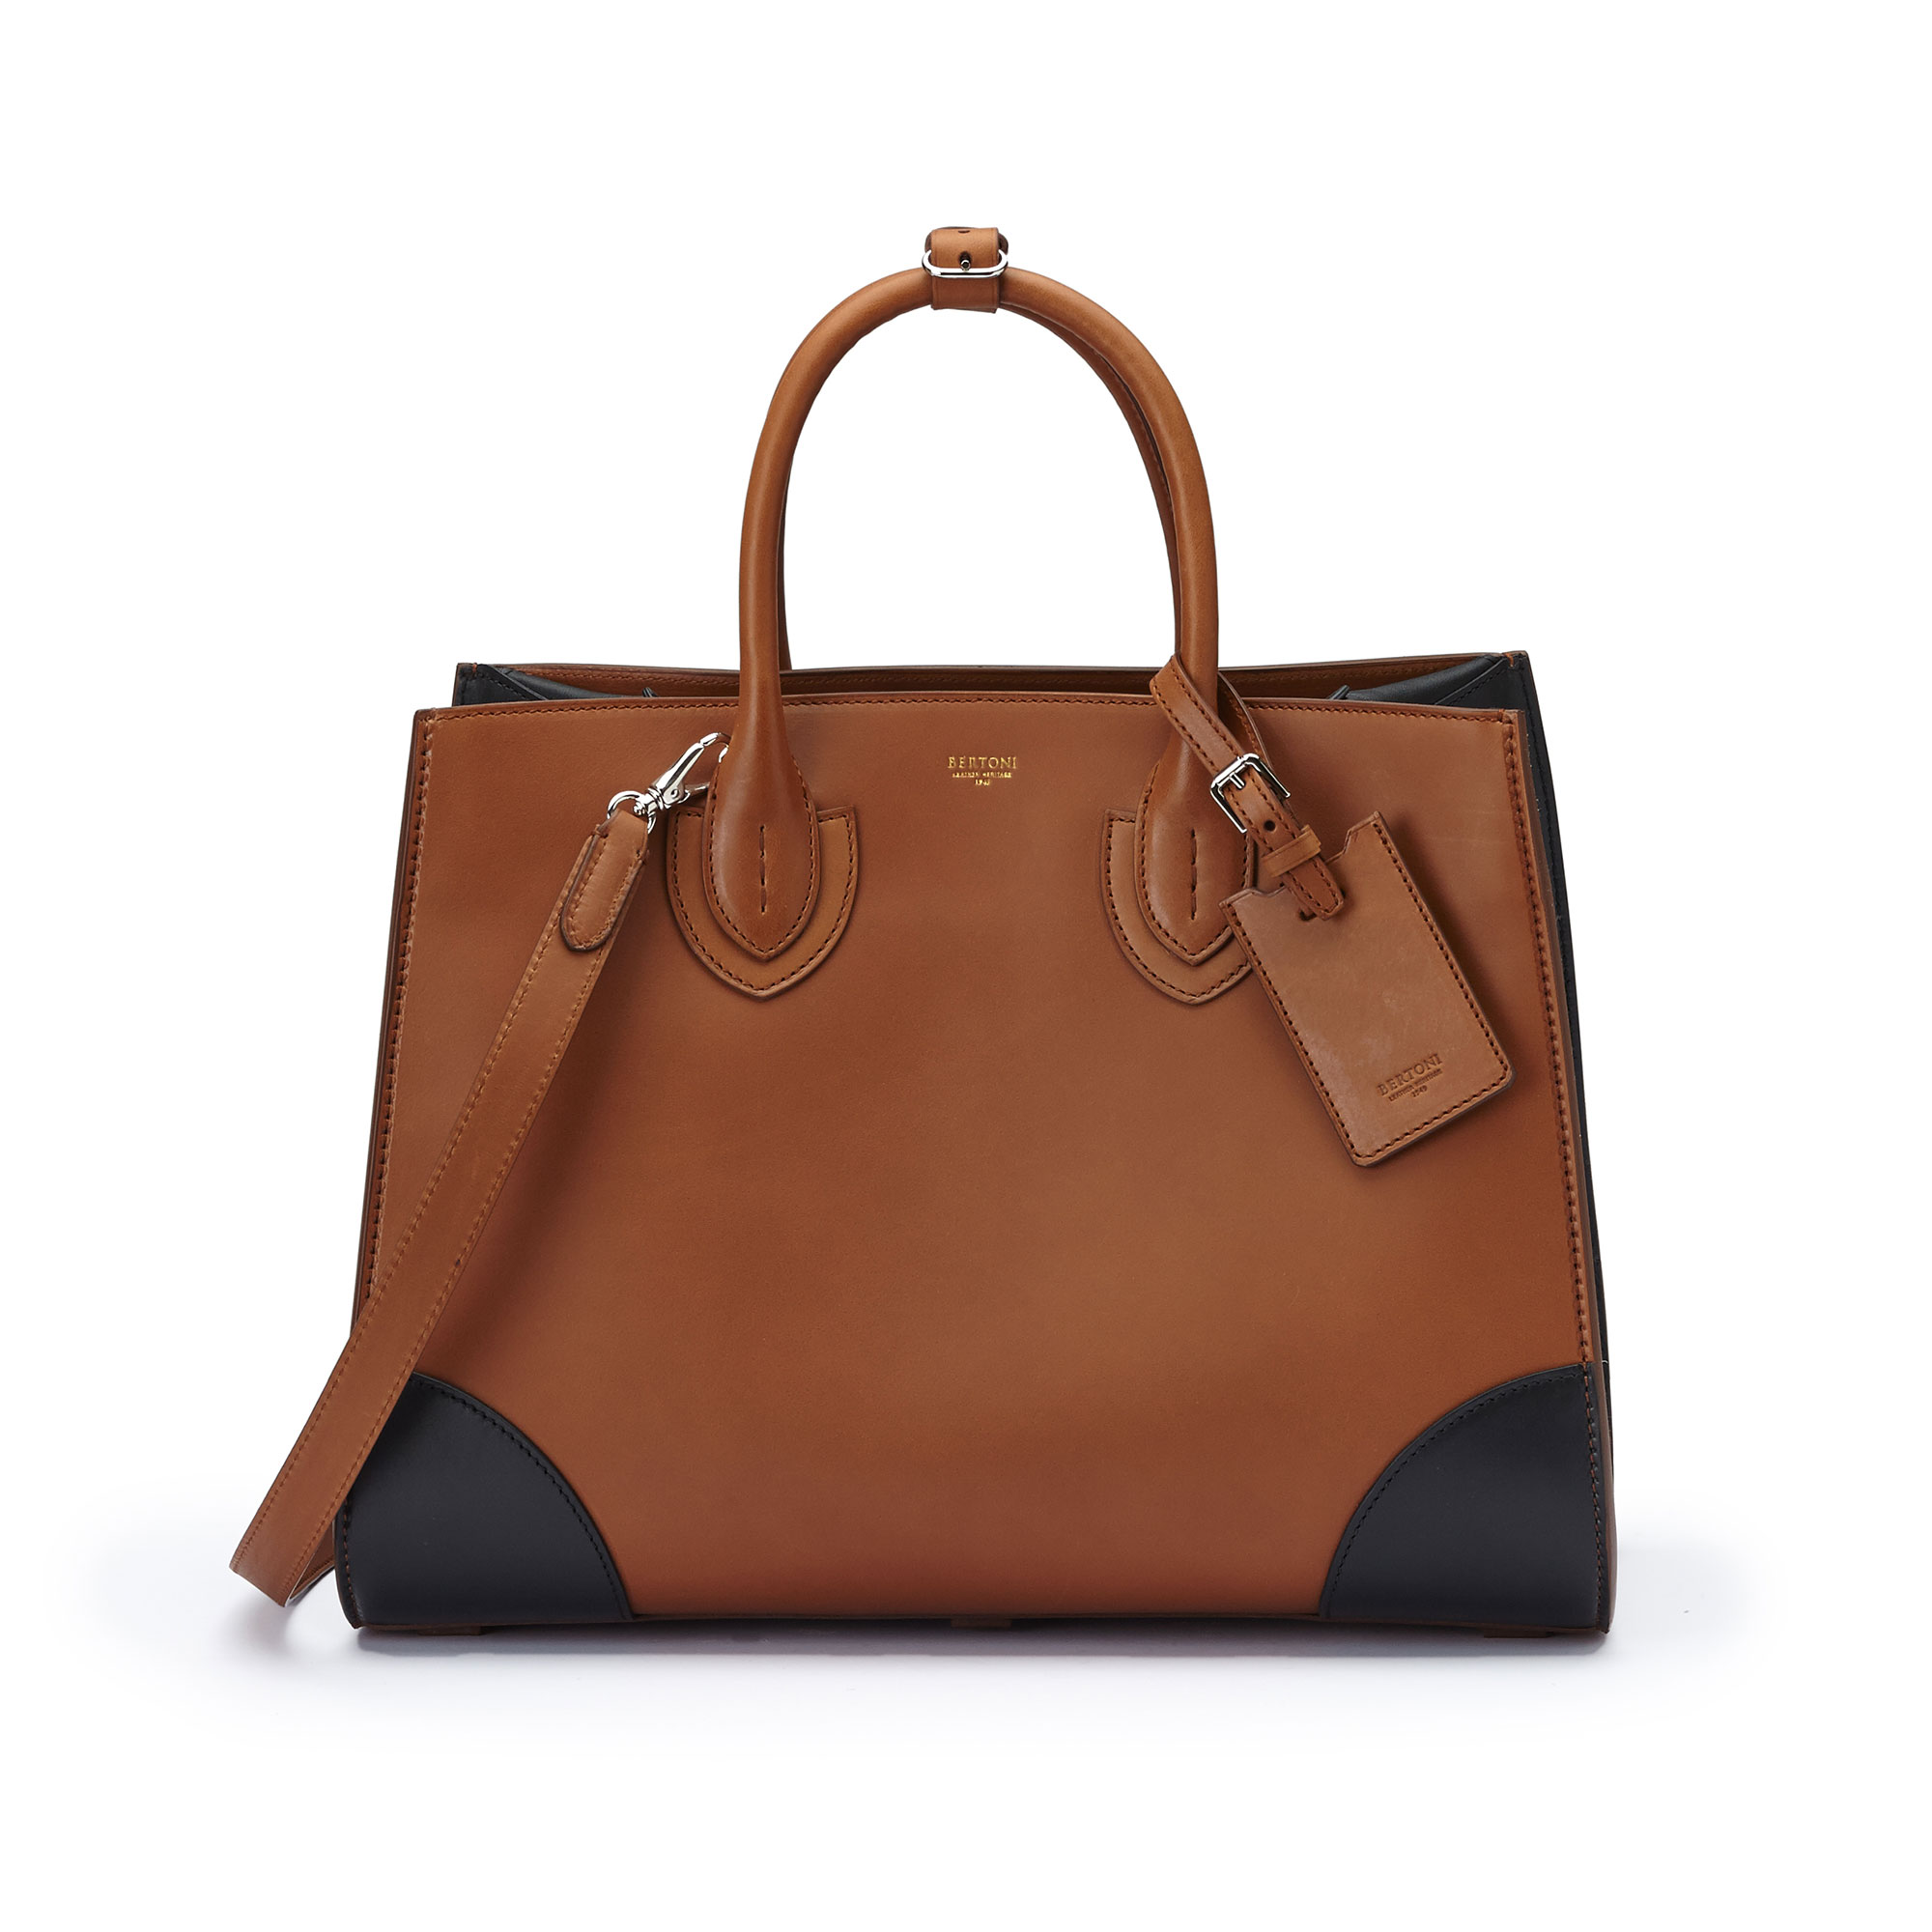 The terrabruciata and black french calf Darcy large bag by Bertoni 1949 01